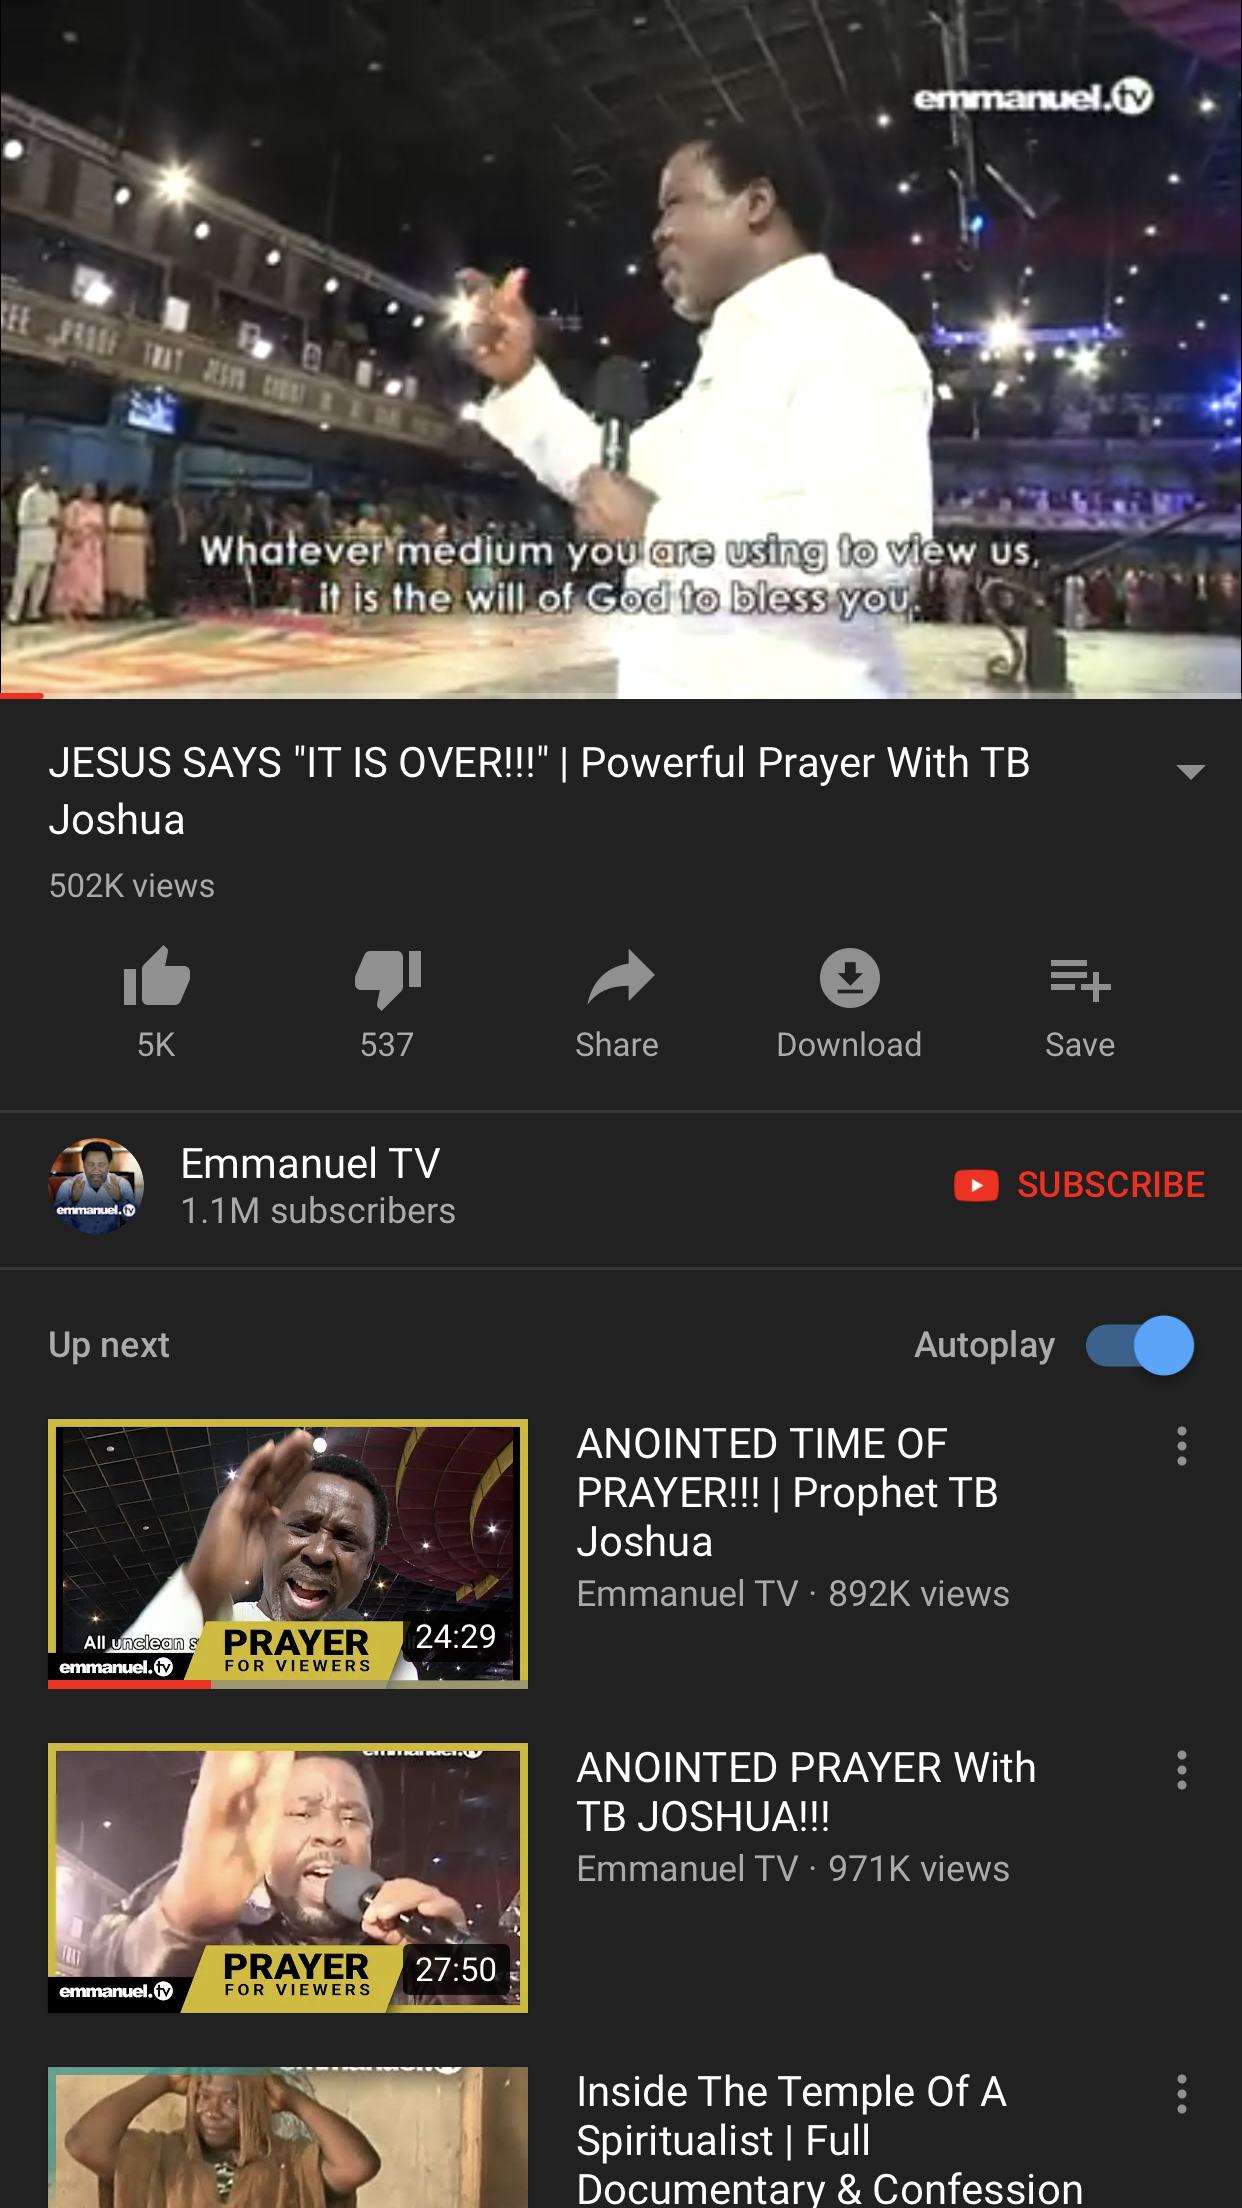 Delivered From Masturbation, Porn Through Emmanuel TV On YouTube